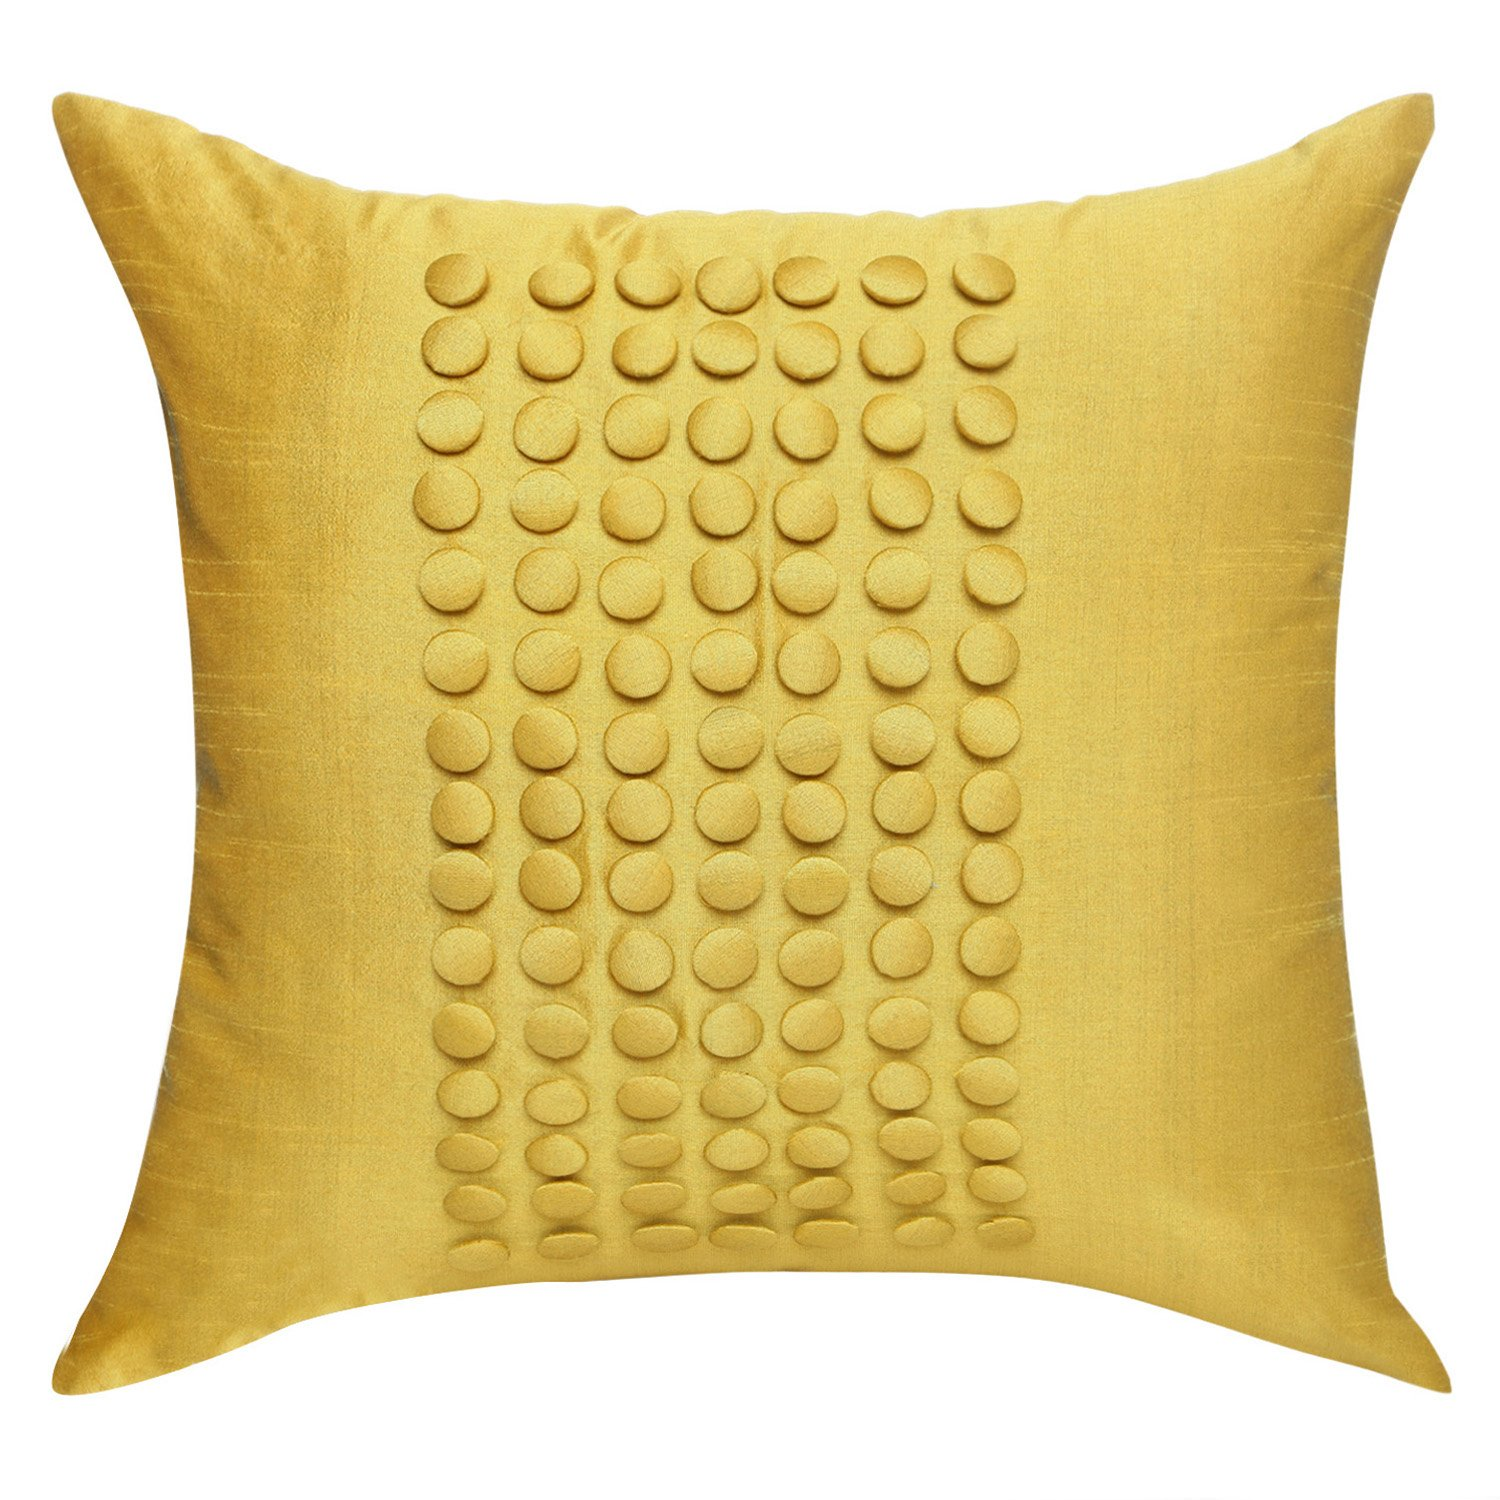 Mustard Throw Pillow Covers : Mustard Yellow Bedding Pillow Covers & Curtains ? Ease Bedding with Style